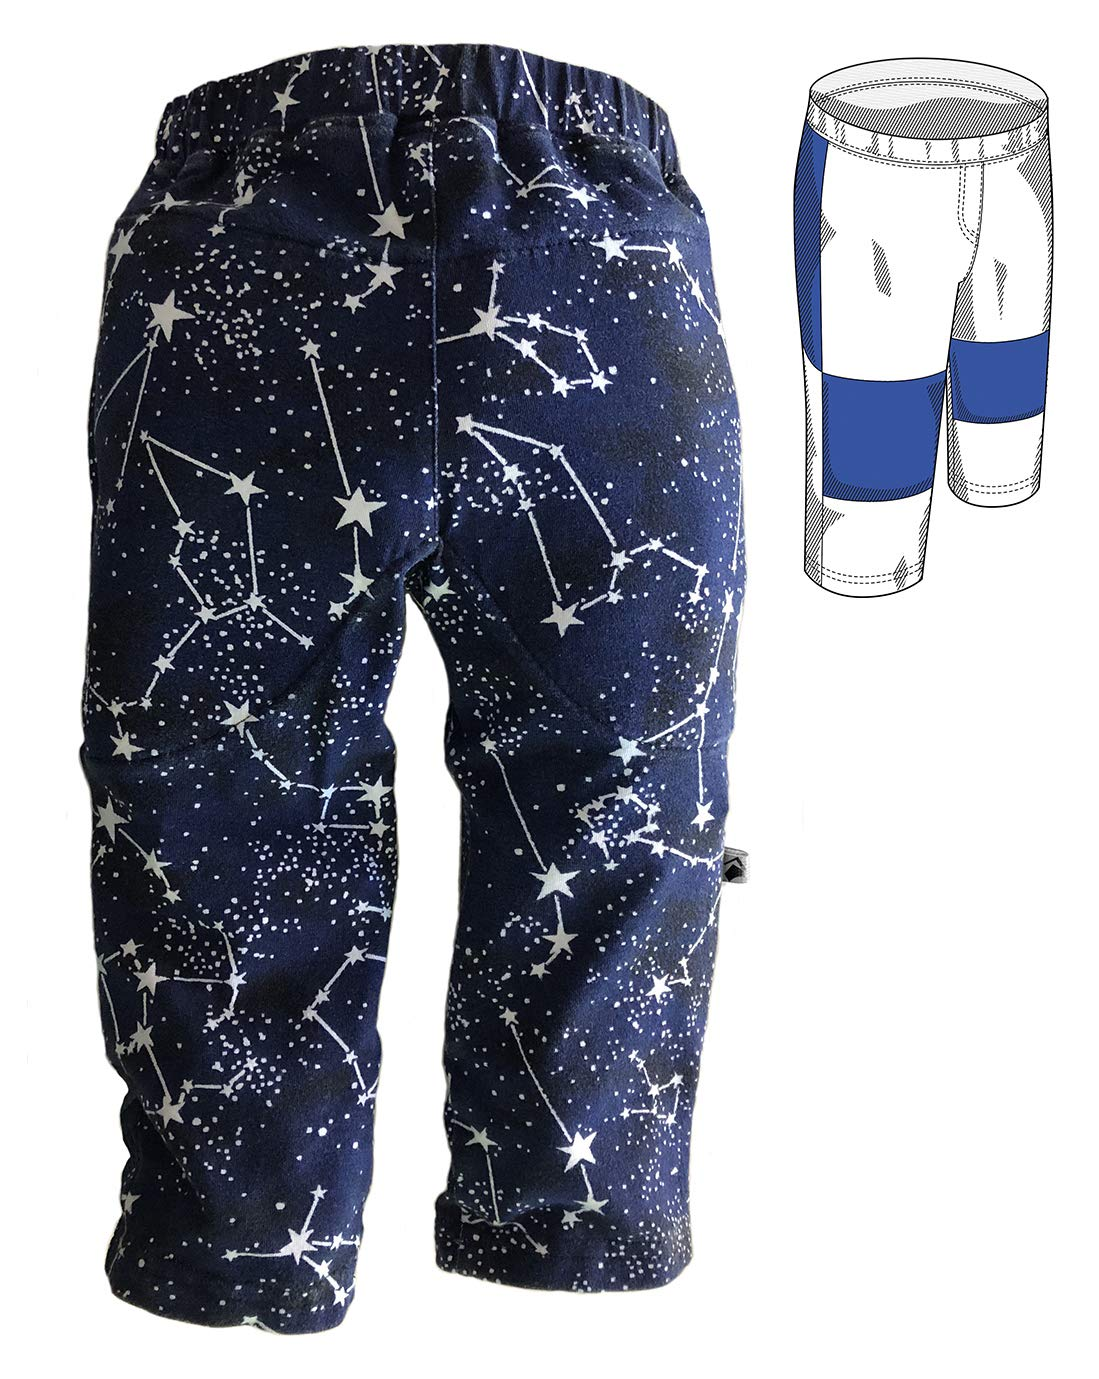 Rough House Kids Padded Pants - Super Star - 06 Months by Rough House Kids (Image #3)